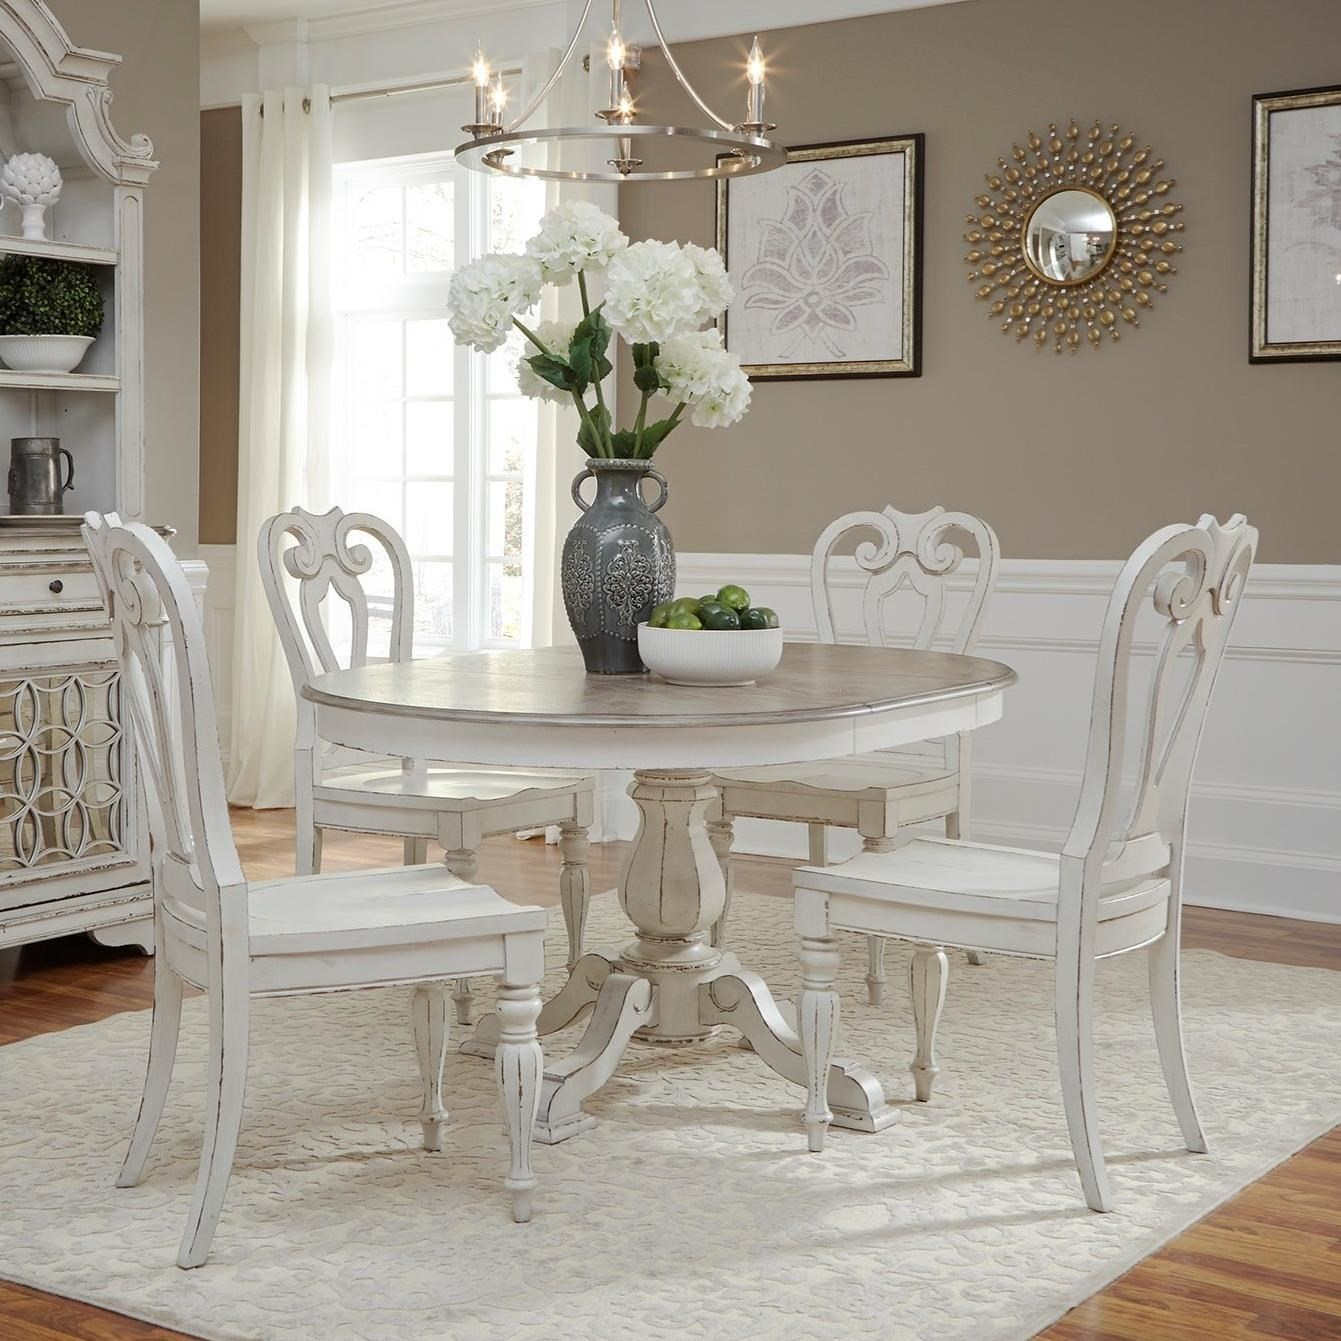 Picture of: Liberty Furniture Magnolia Manor Dining Traditional Five Piece Chair And Table Set Royal Furniture Dining 5 Piece Sets